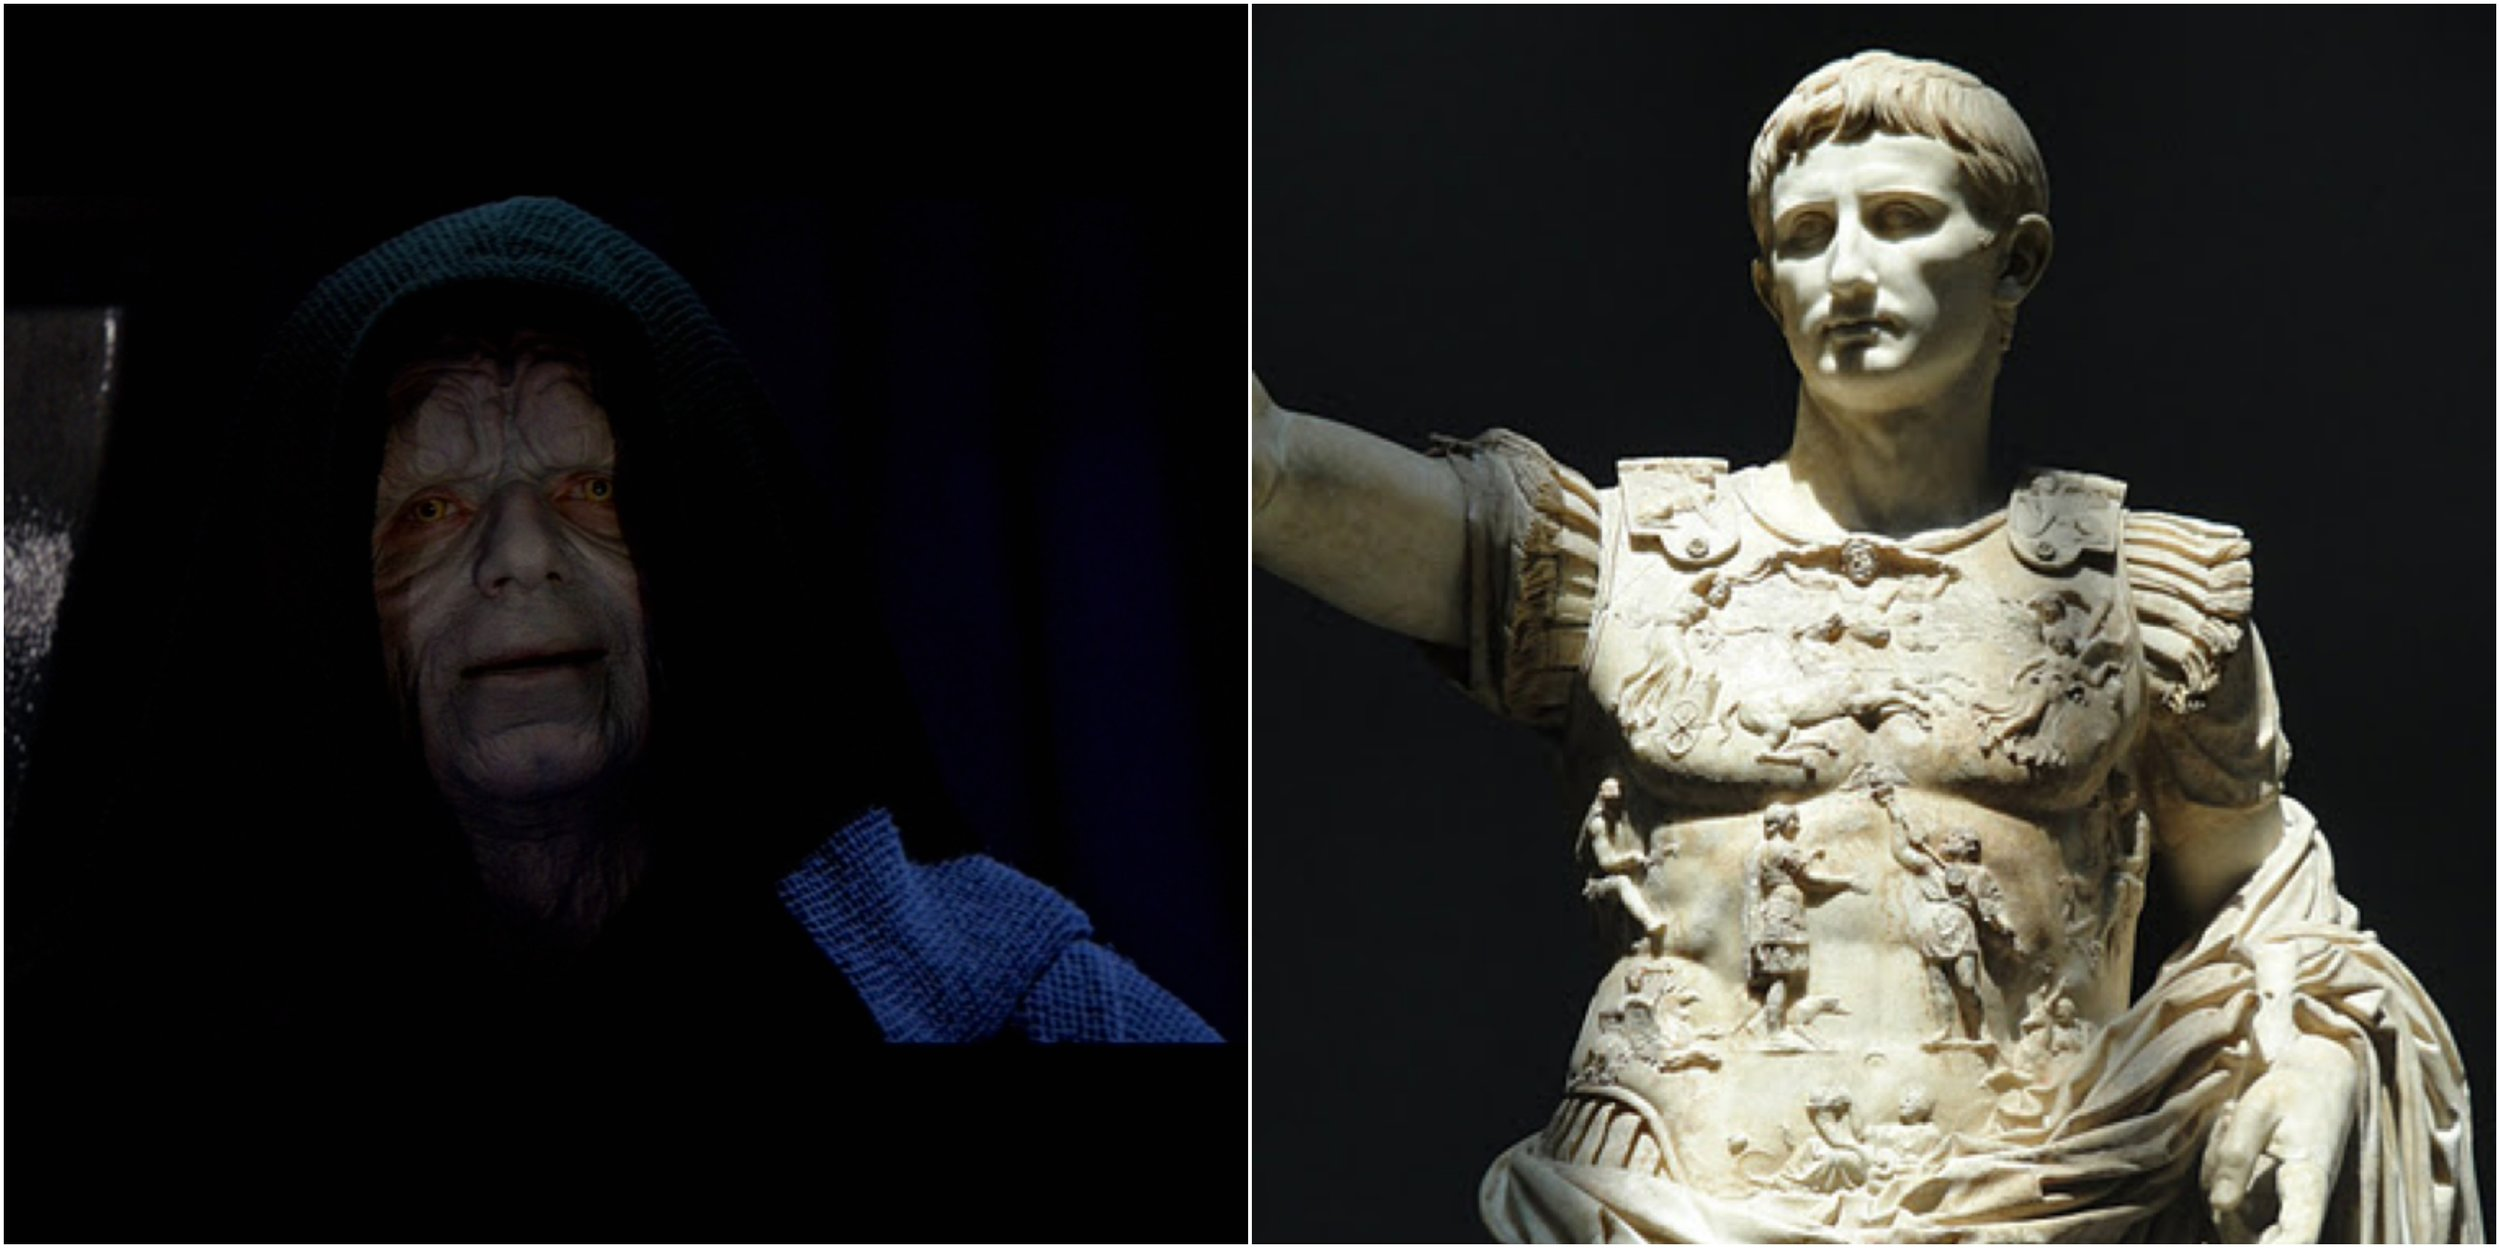 Figure 1: Two of a kind? On the left,  Star Wars ' Emperor Palpatine; on the right, Rome's first emperor Augustus, as portrayed in the Prima Porta statue. Photo credits: Twentieth Century Fox (DVD) and Wikimedia Commons.